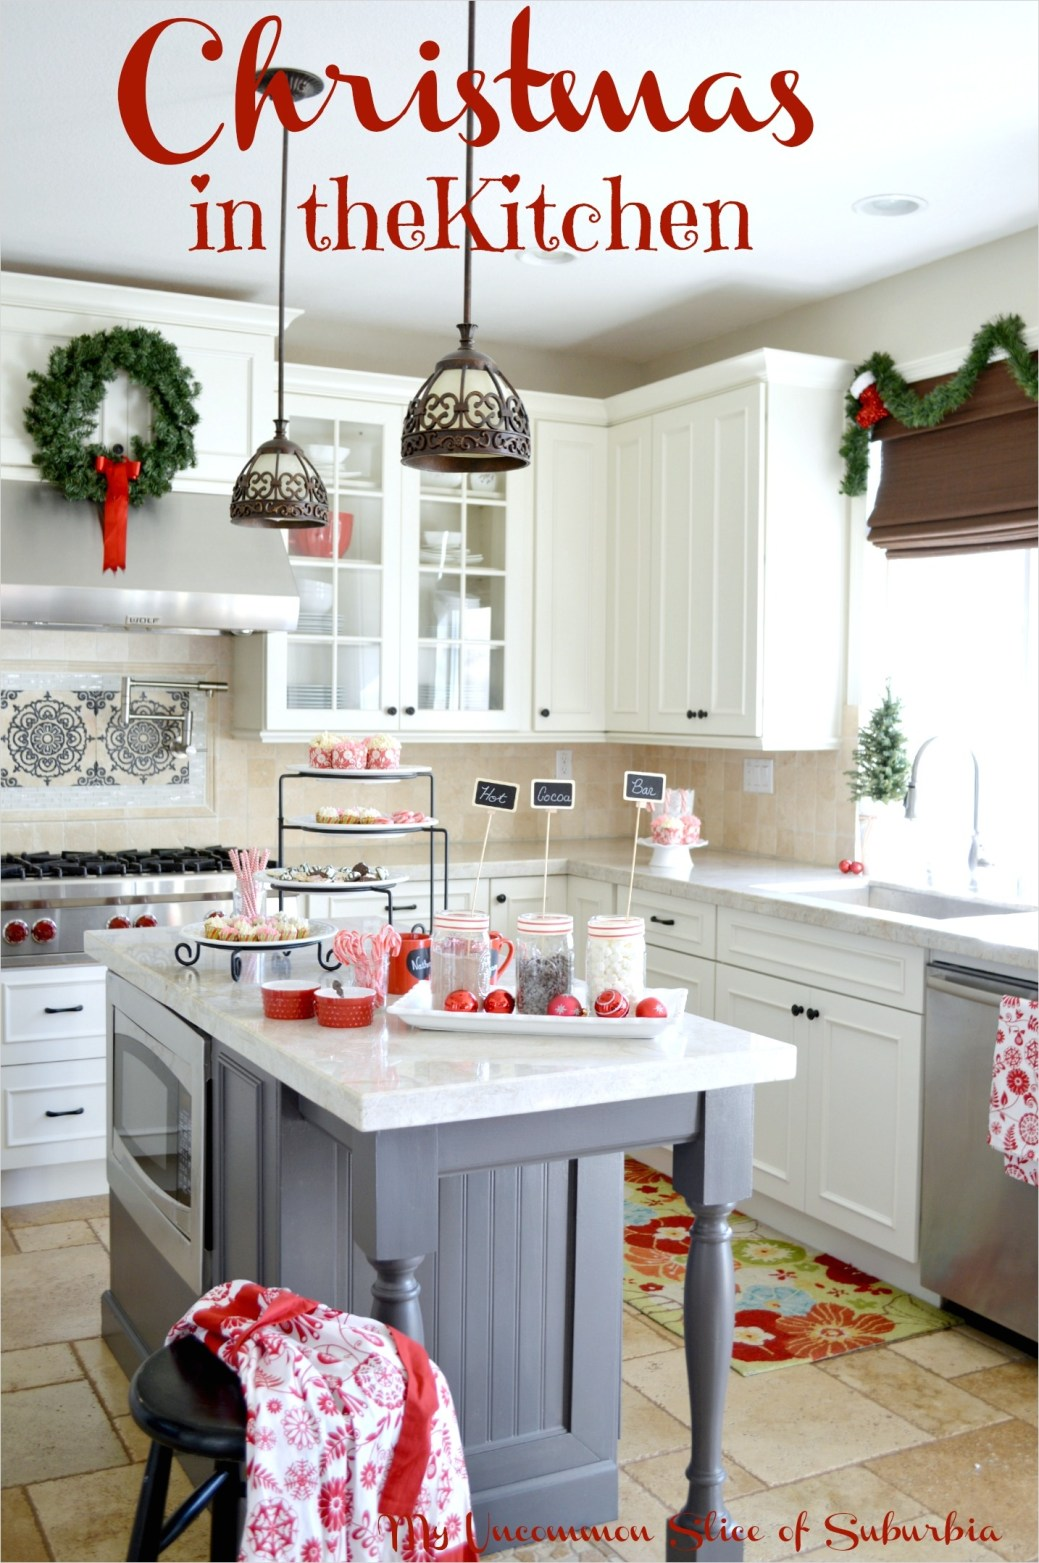 42 Awesome Kitchen Christmas Decorating Ideas 38 Christmas Decorating In the Kitchen 4